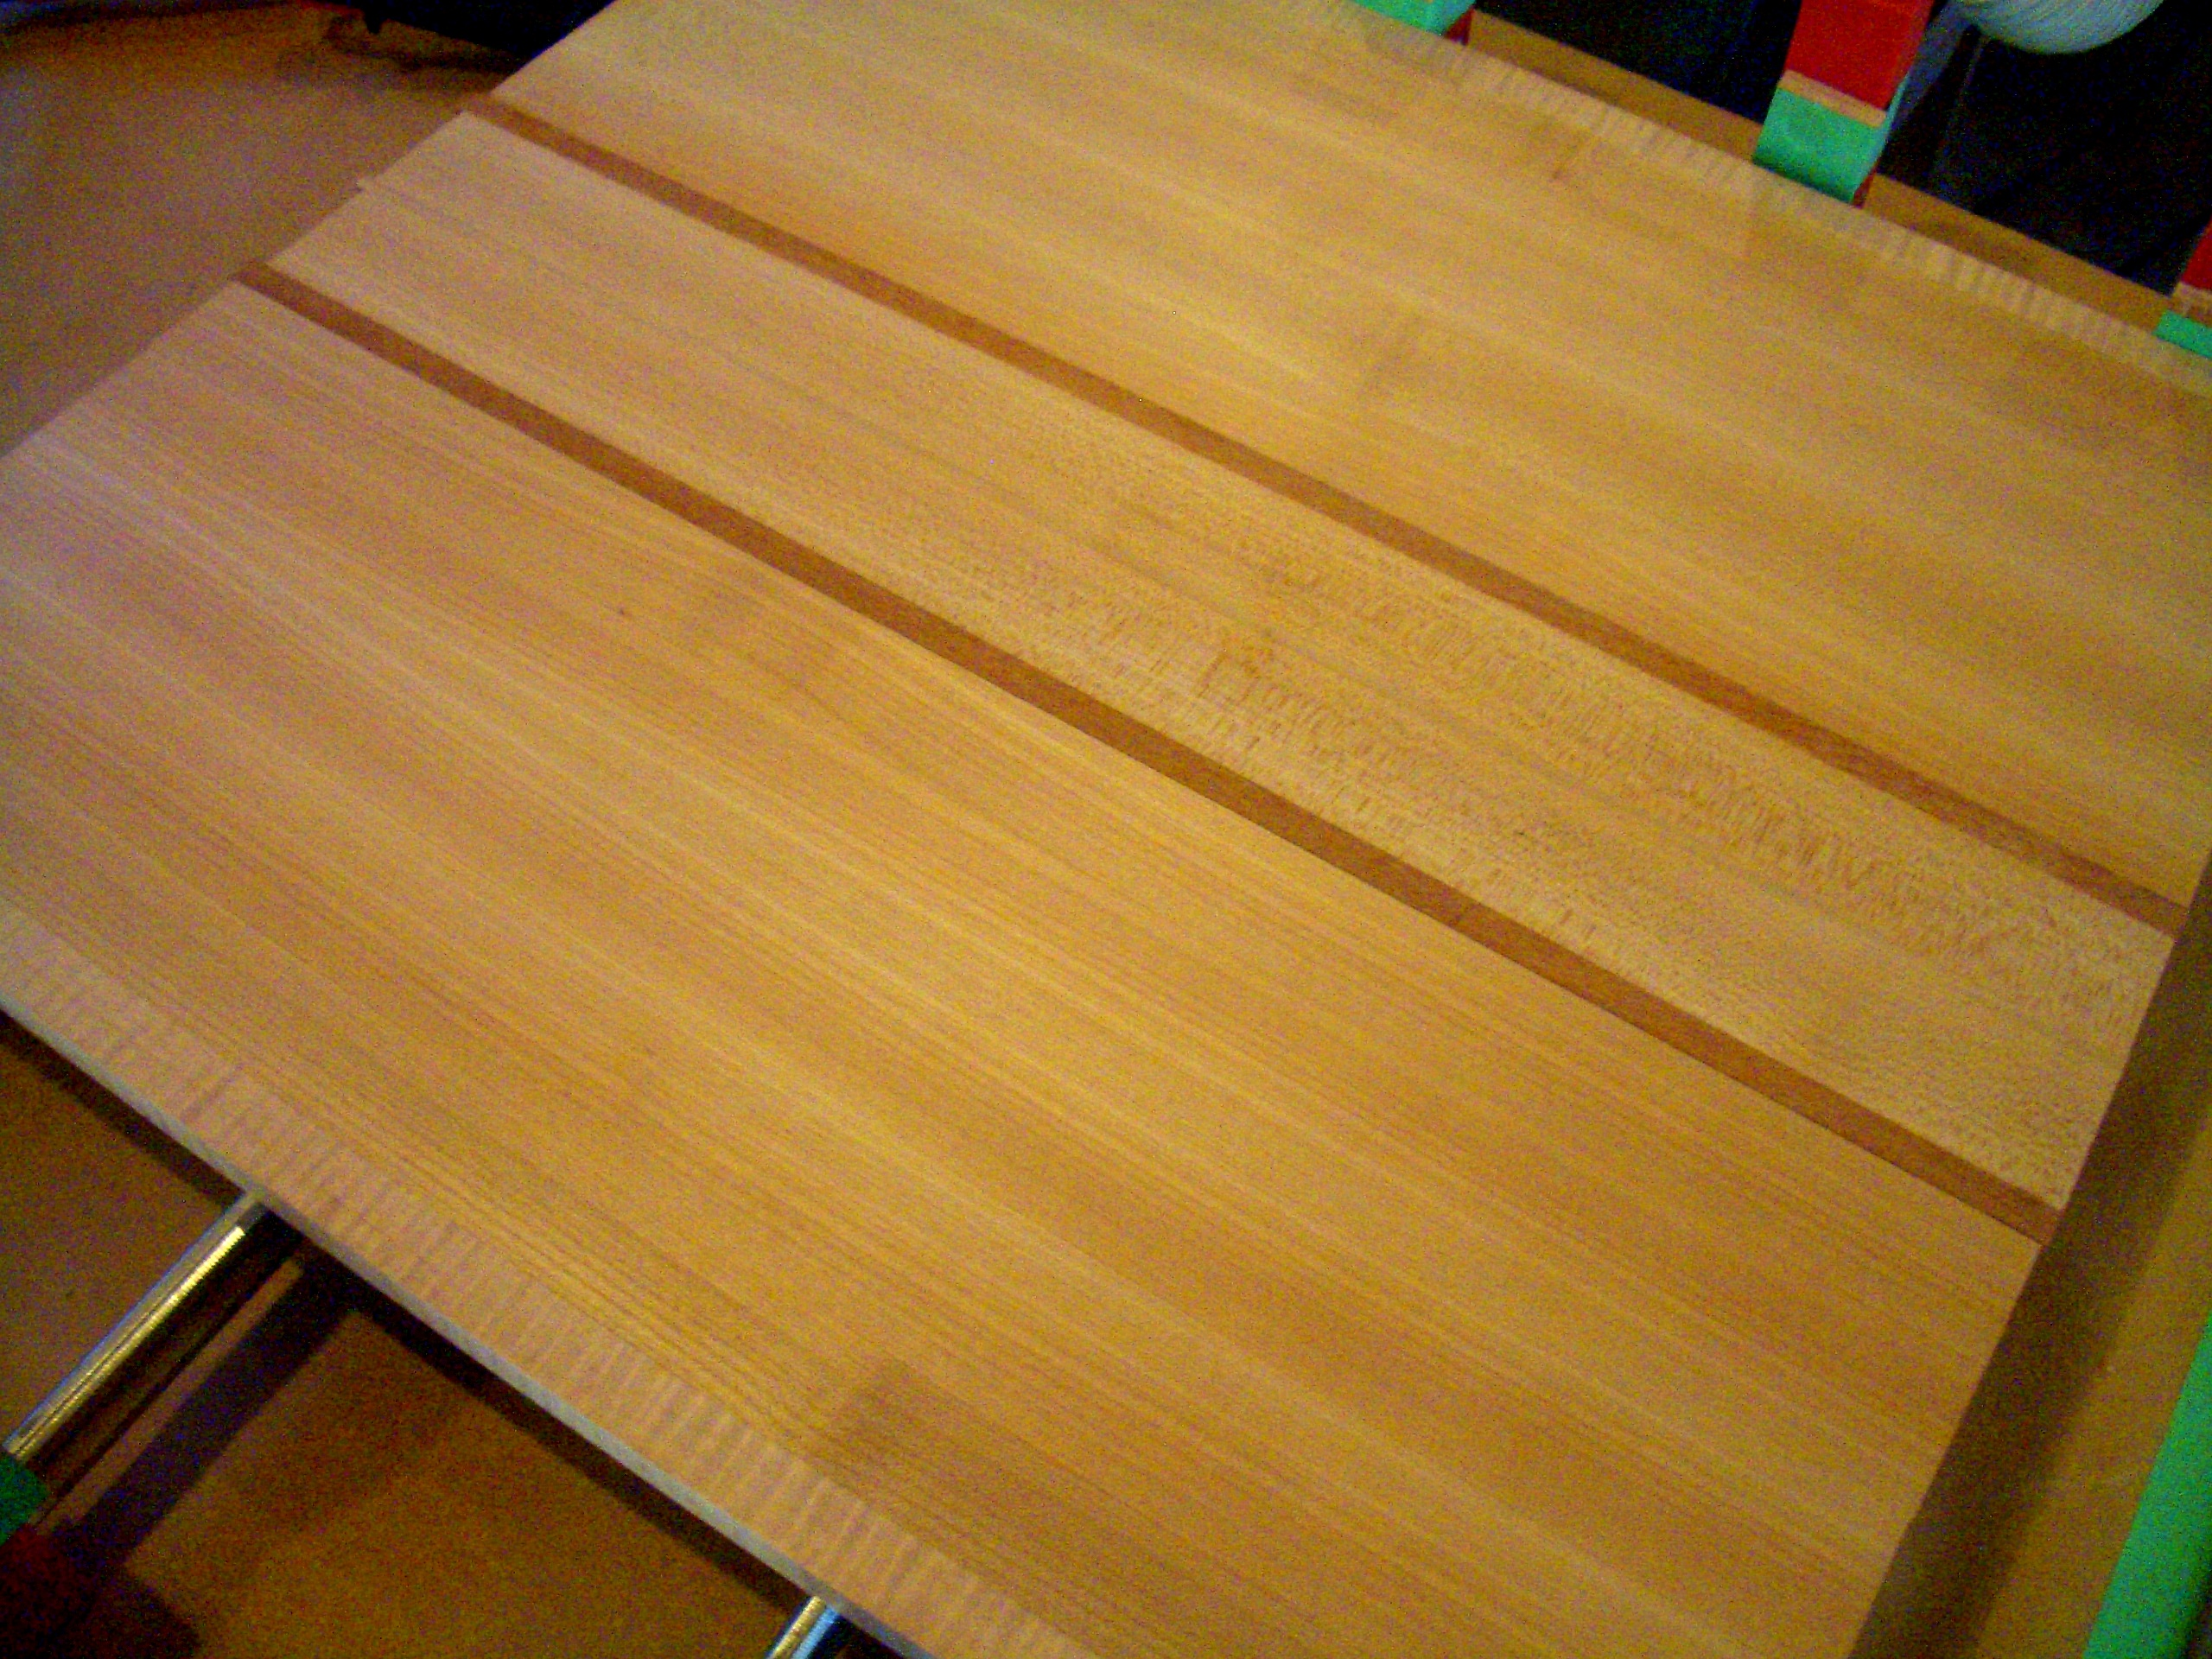 Cutting Board replacement